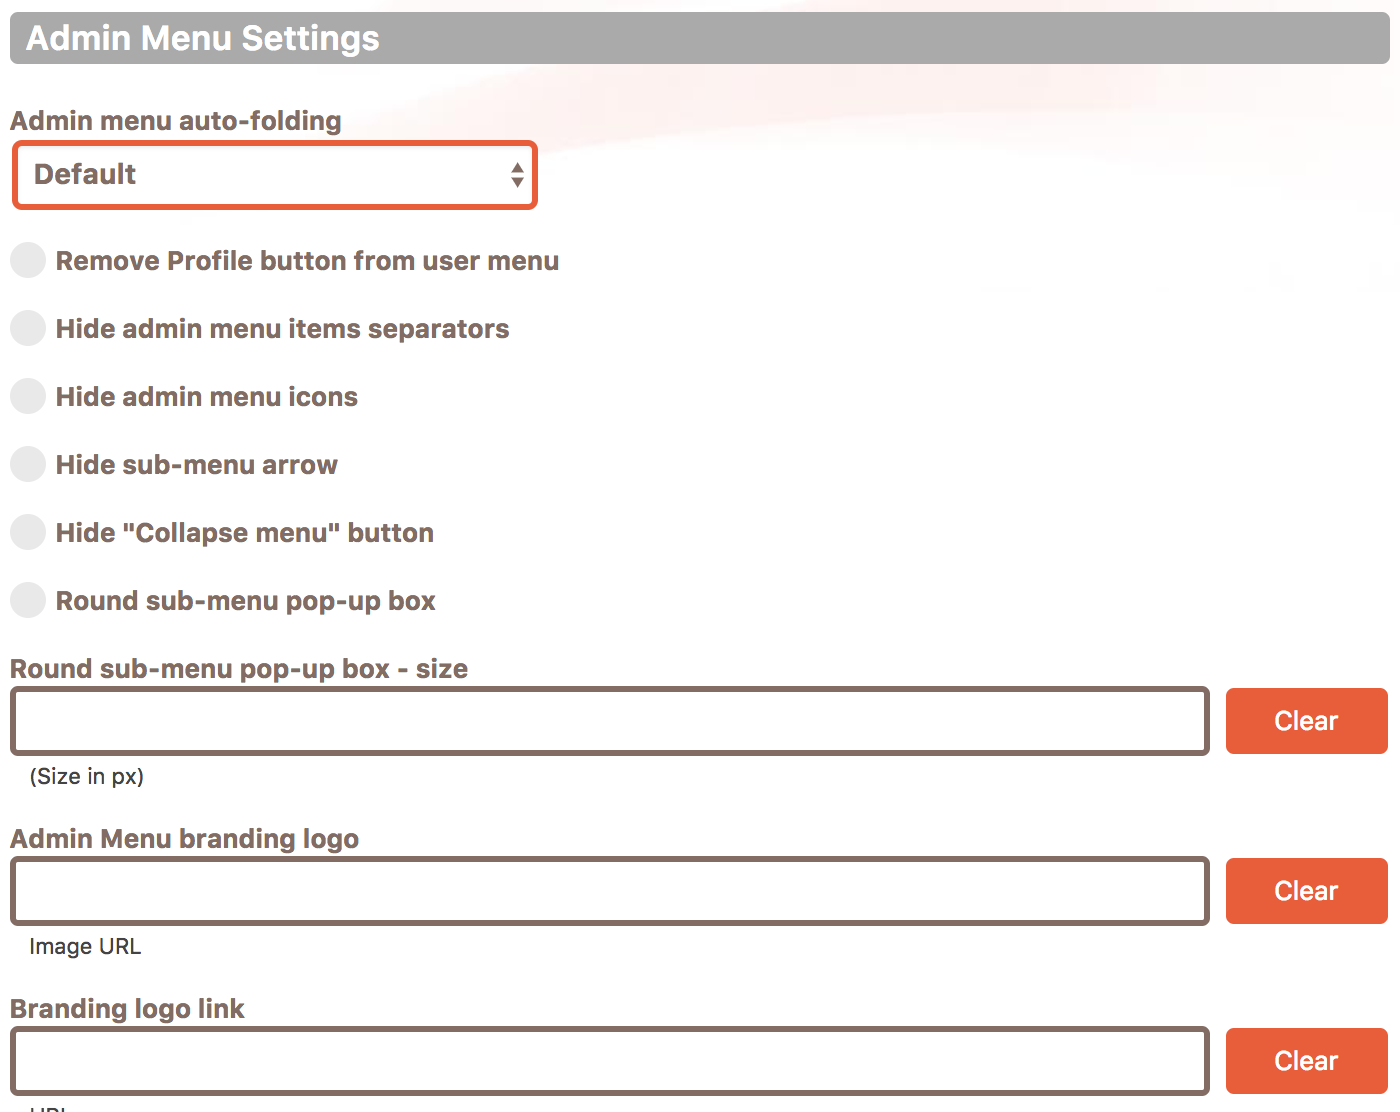 Cusmin Admin Menu Settings